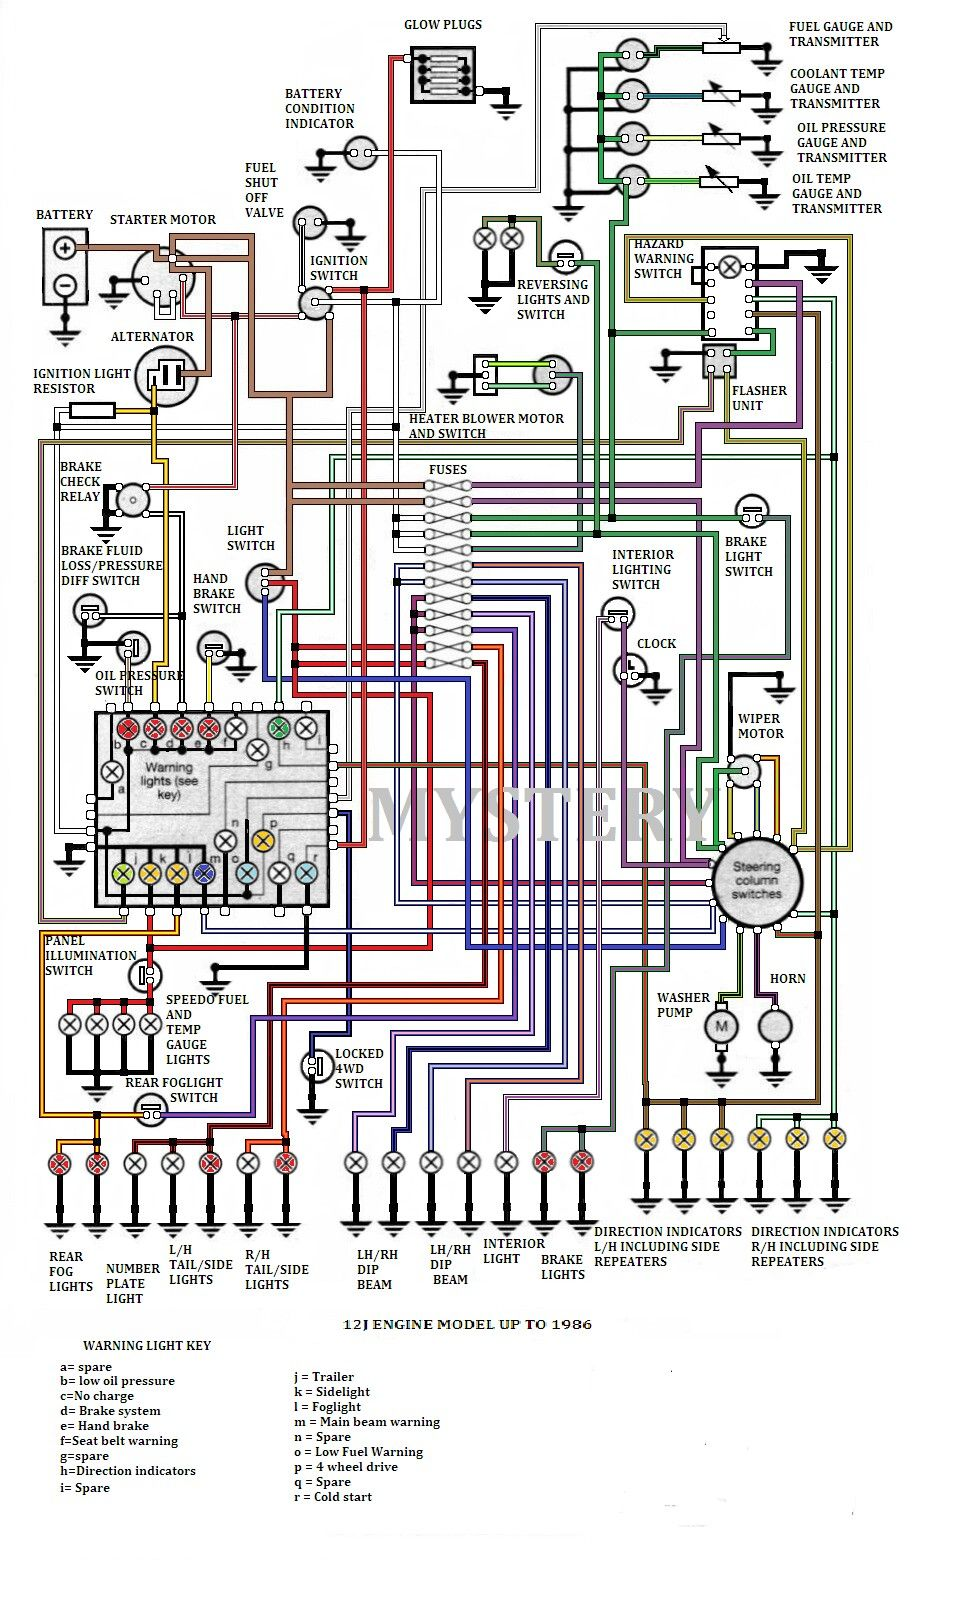 Lr Defender 1985 Wiring Diagram Land Rover Defender Land Rover Defender 90